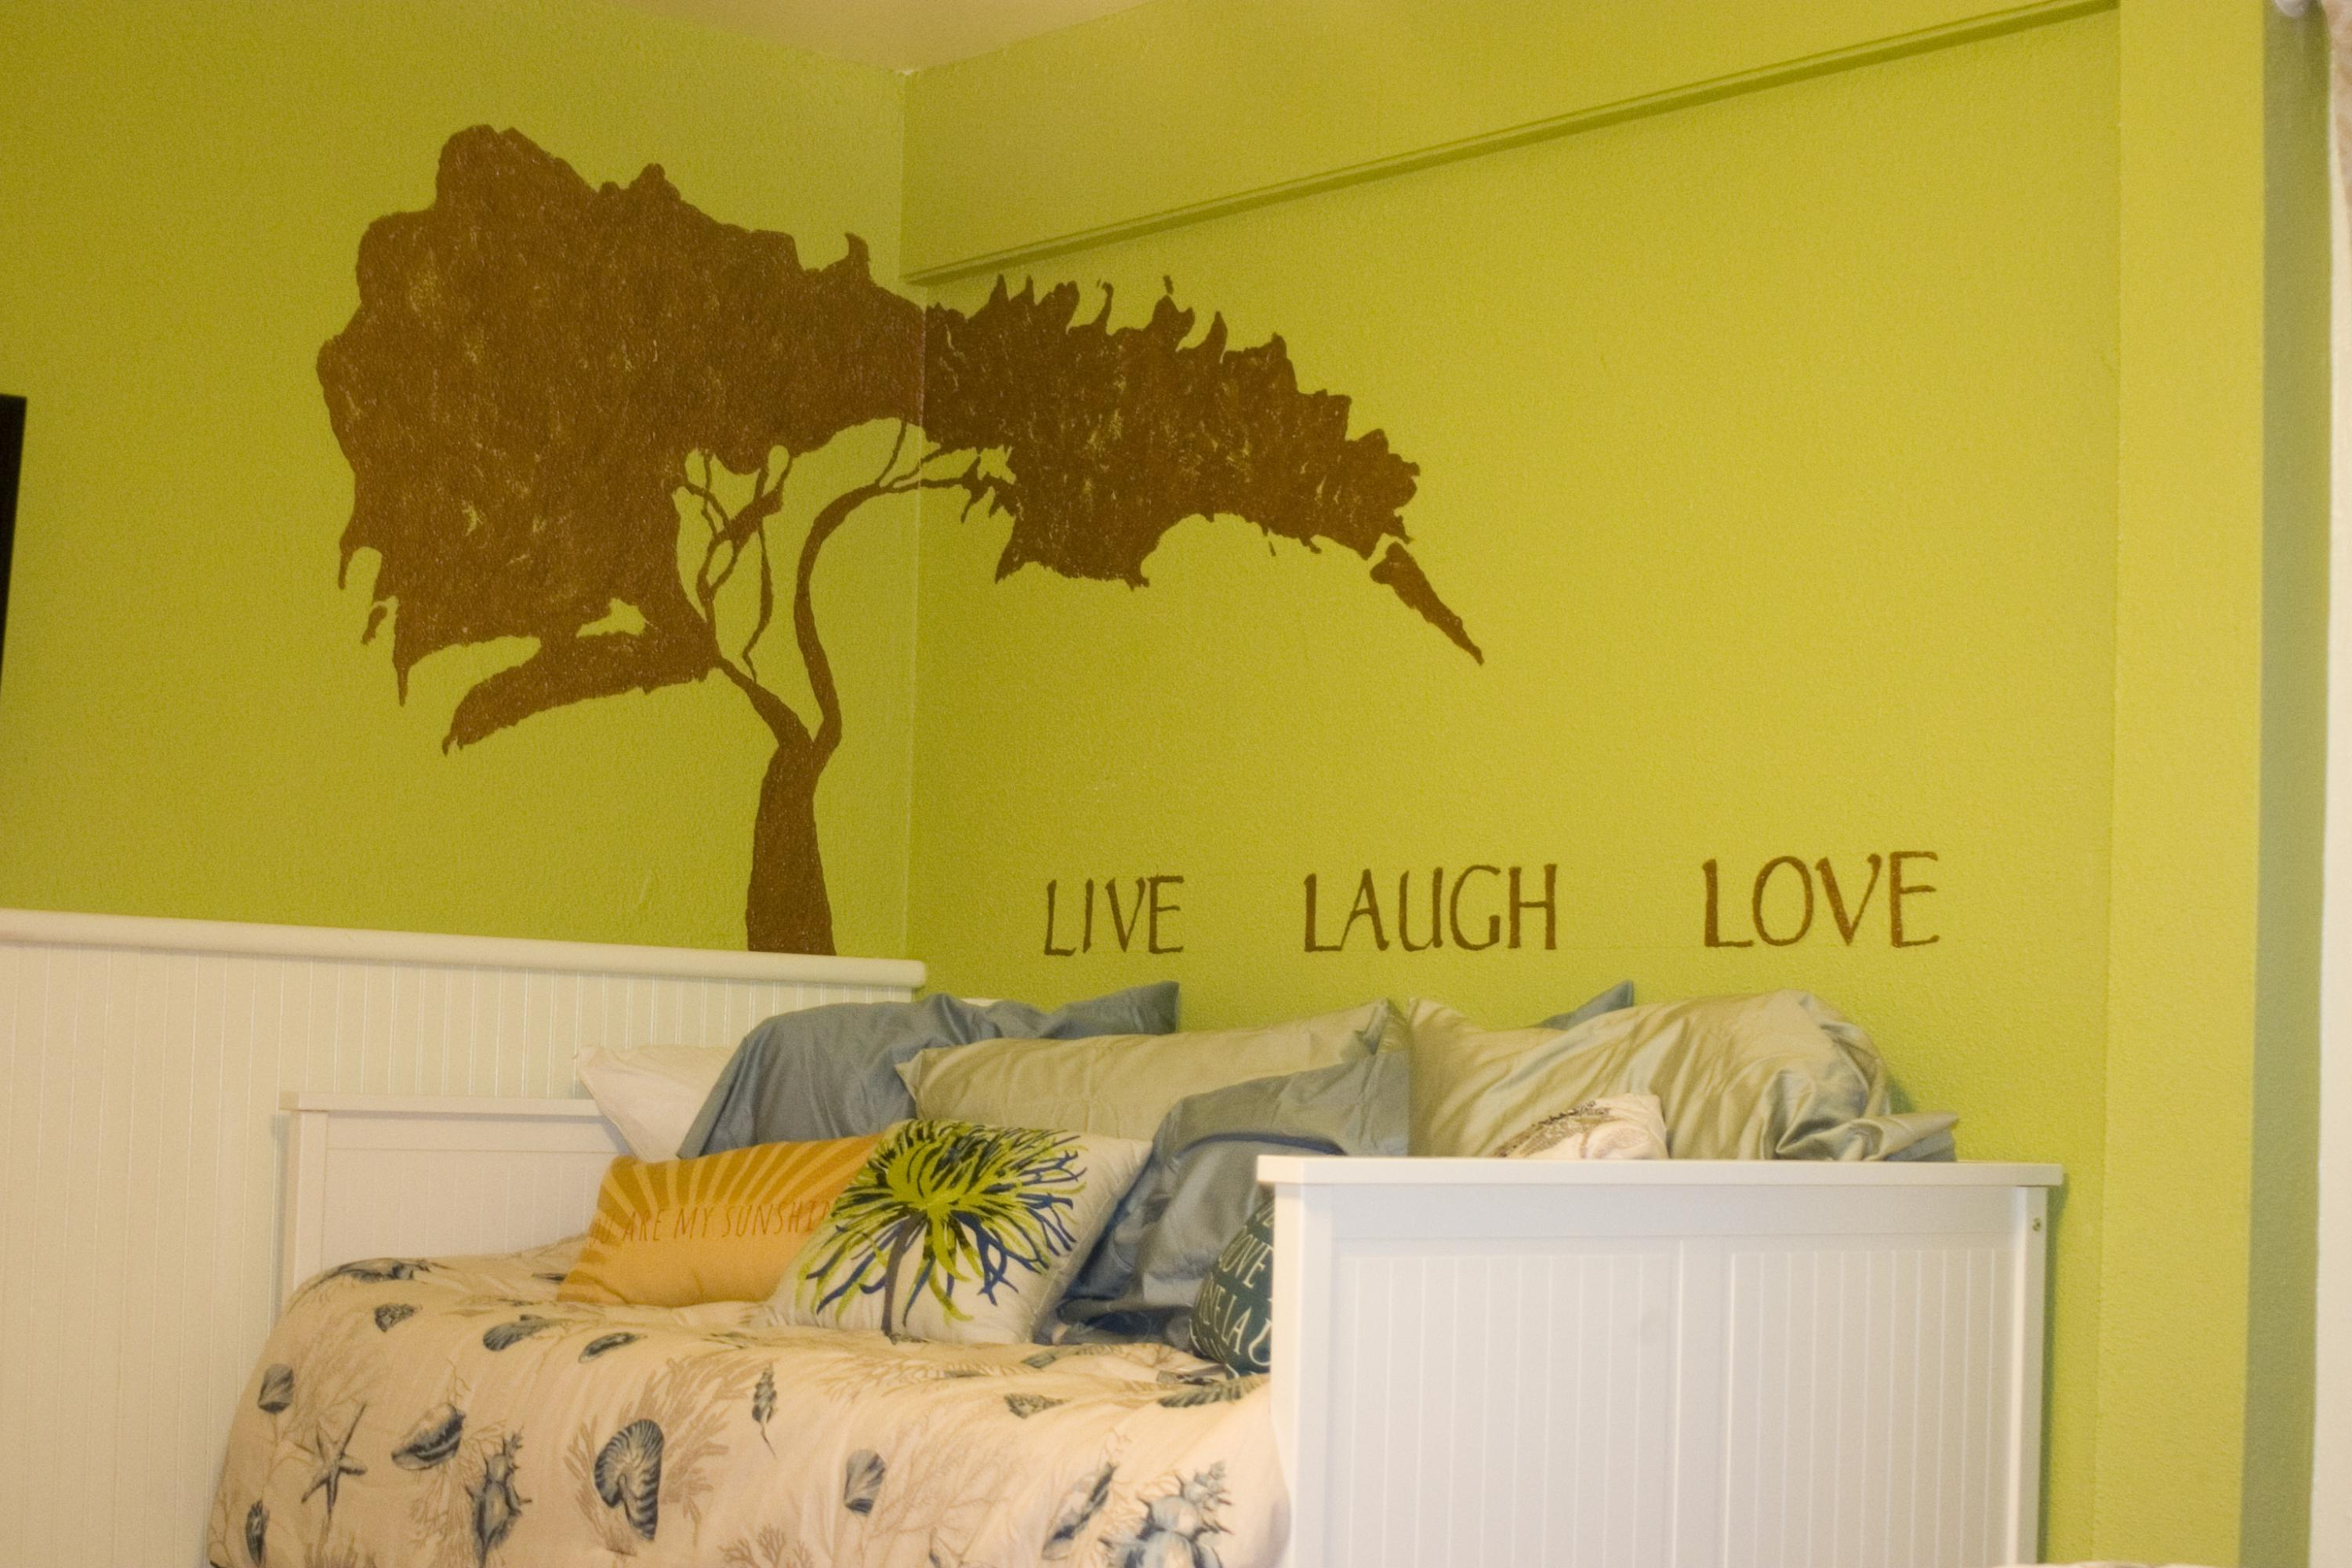 Guest Bedroom - Live Laugh Love - with t